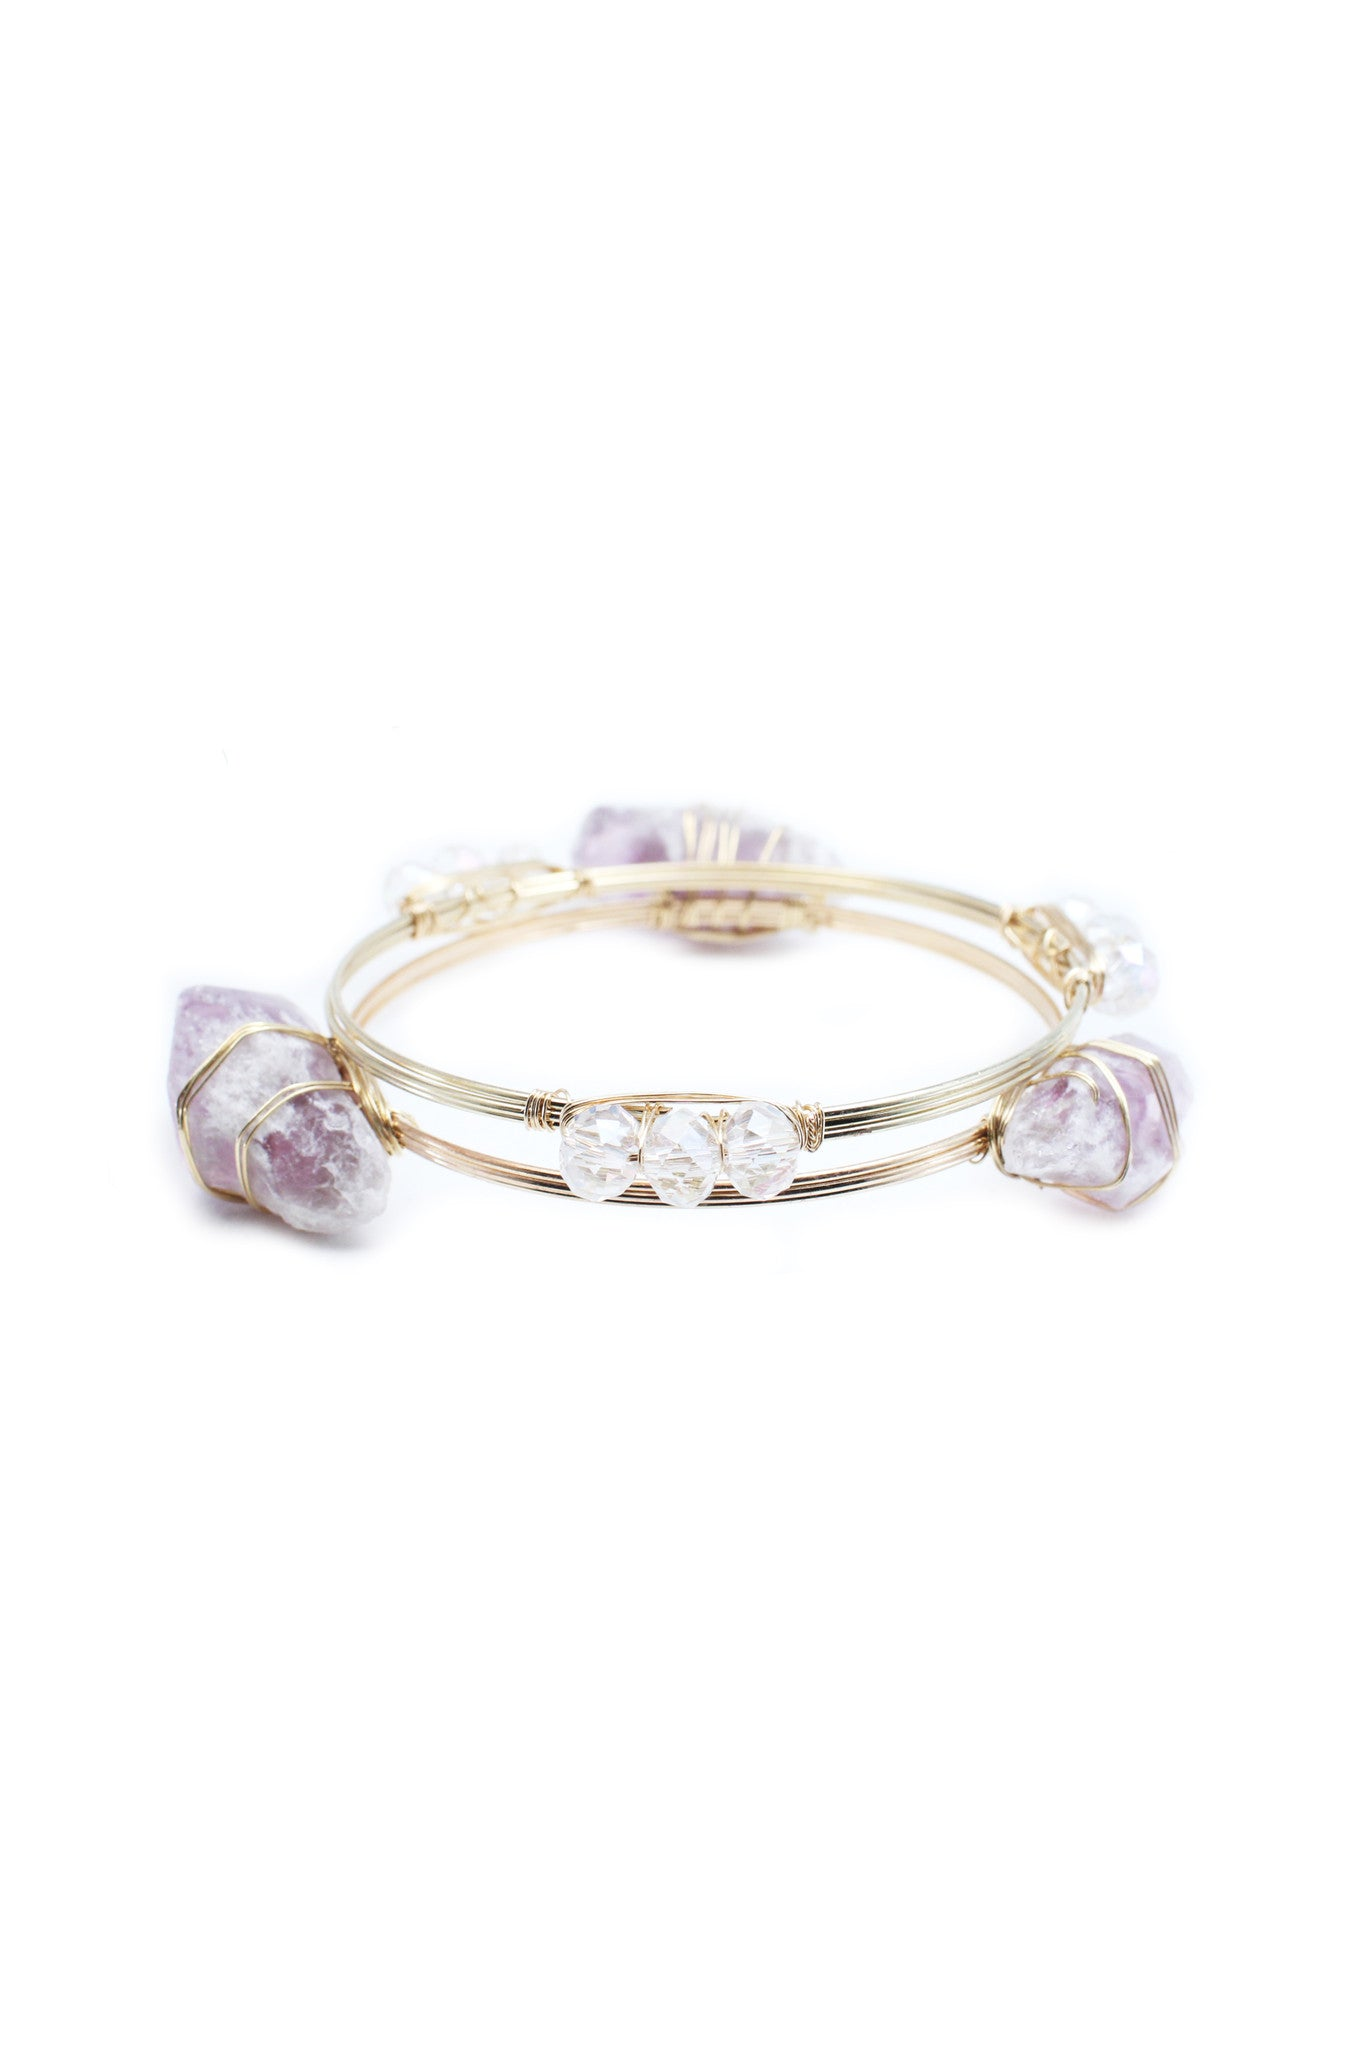 amethyst us sku aemresponsive main bangle fossil products en bangles bracelet pdpzoom